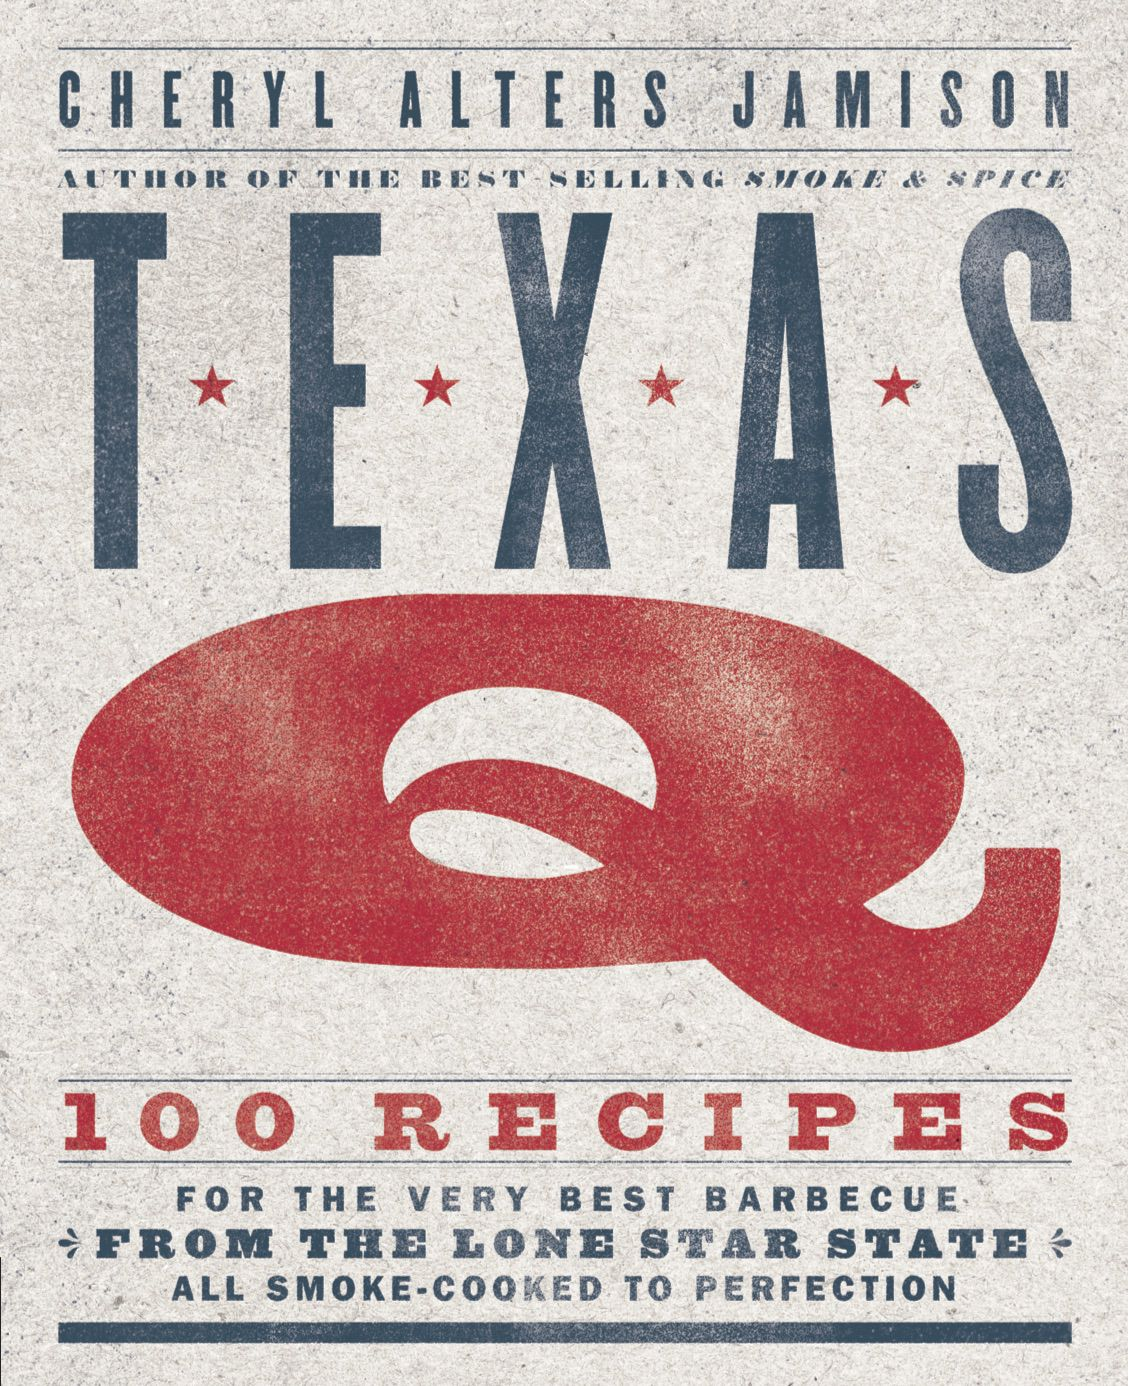 Texas Q: 100 Recipes For the Very Best Barbecue From the Lone Star State, All Smoke-Cooked to Perfection (Harvard Common Press, $26.99) by Cheryl Alters Jamison